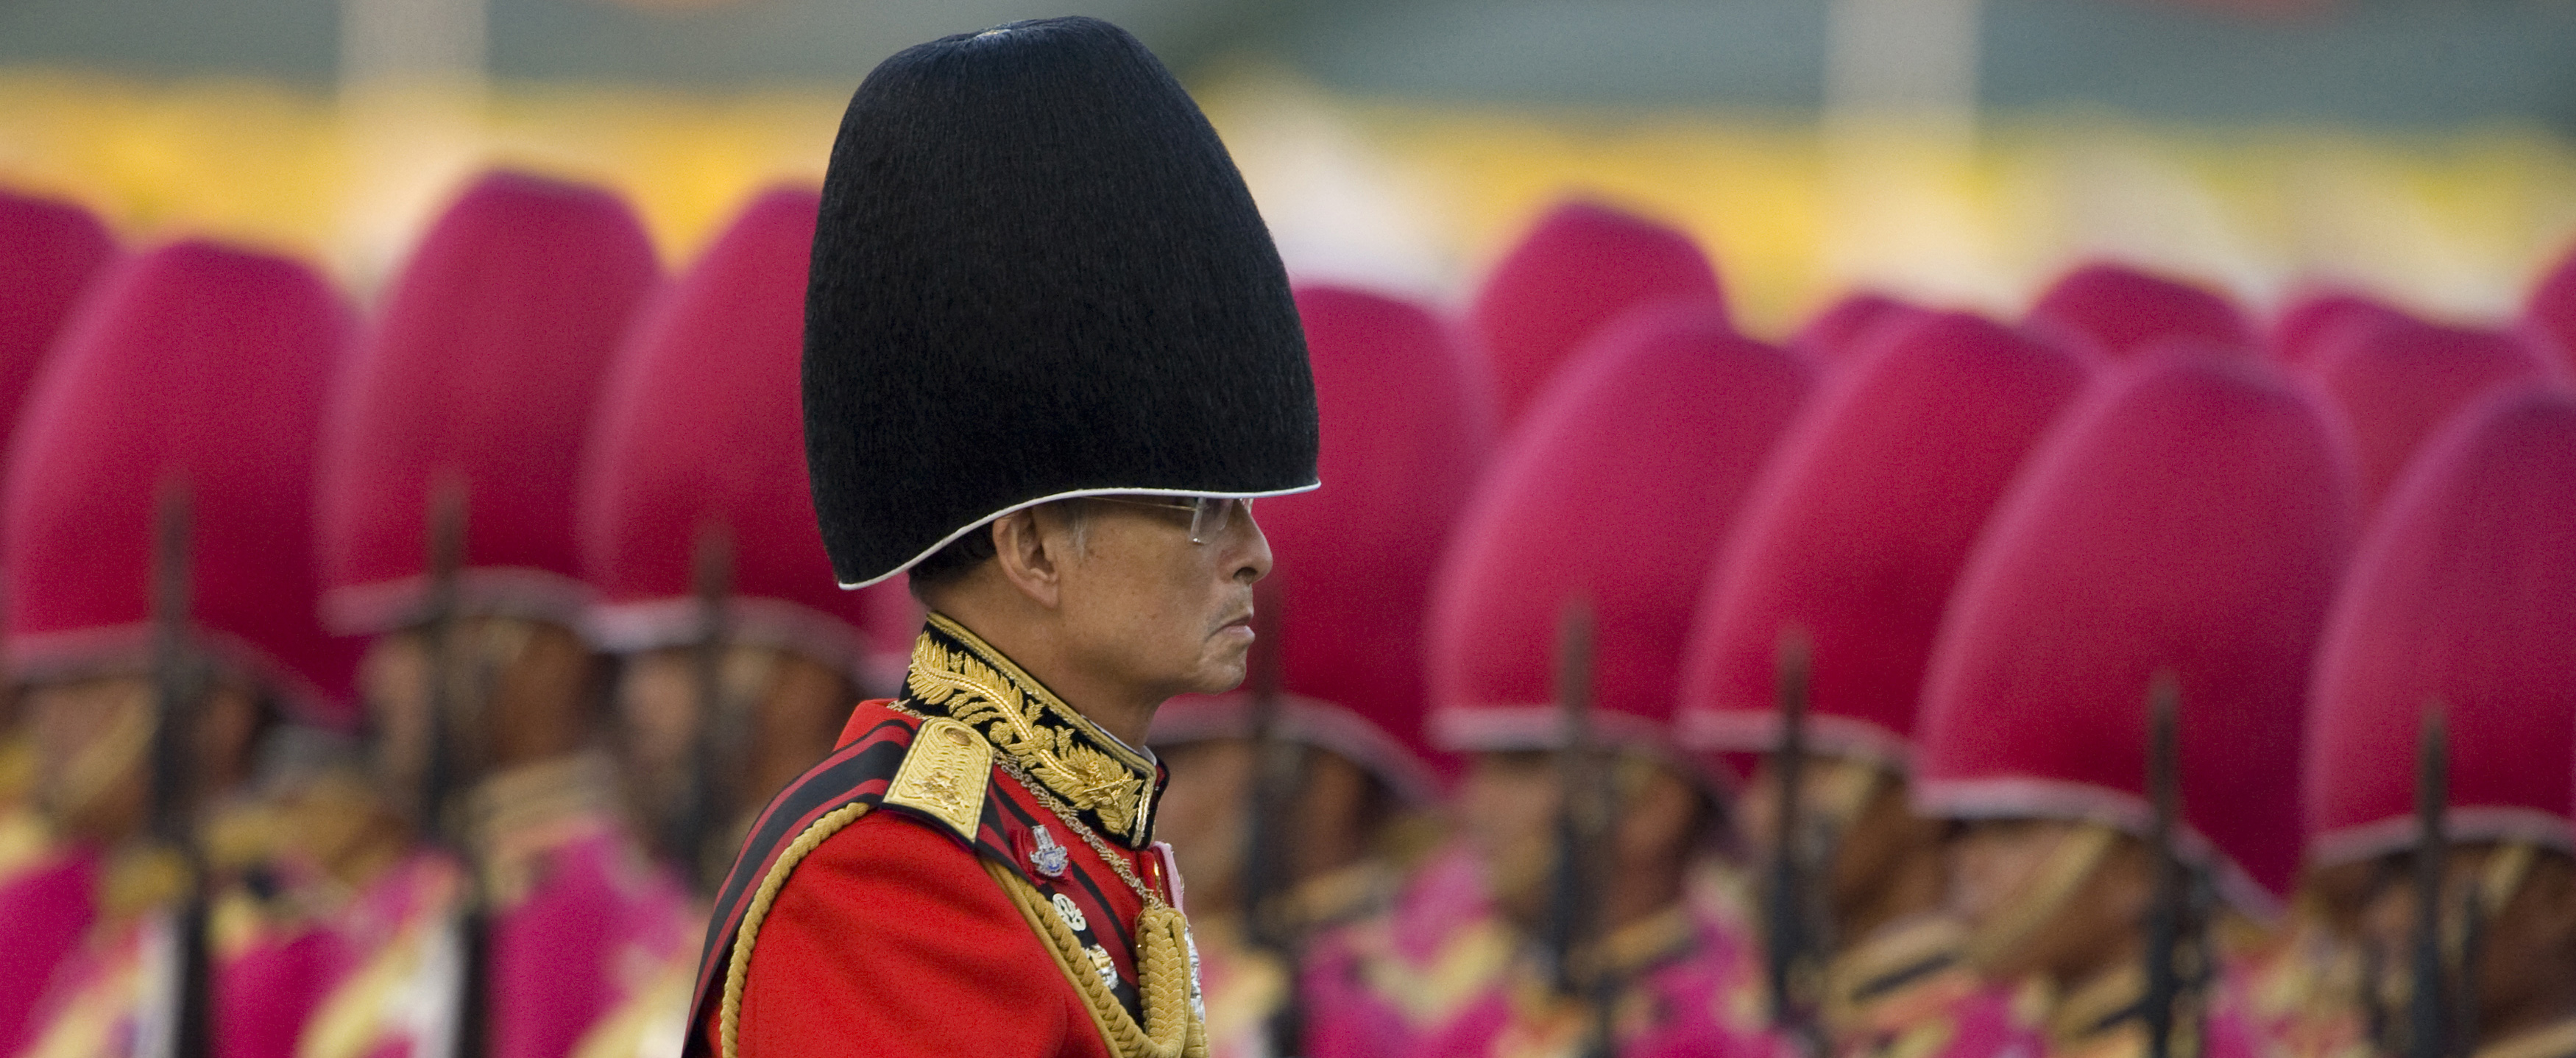 King Bhumibol Adulyadej trooping the colour in 2008